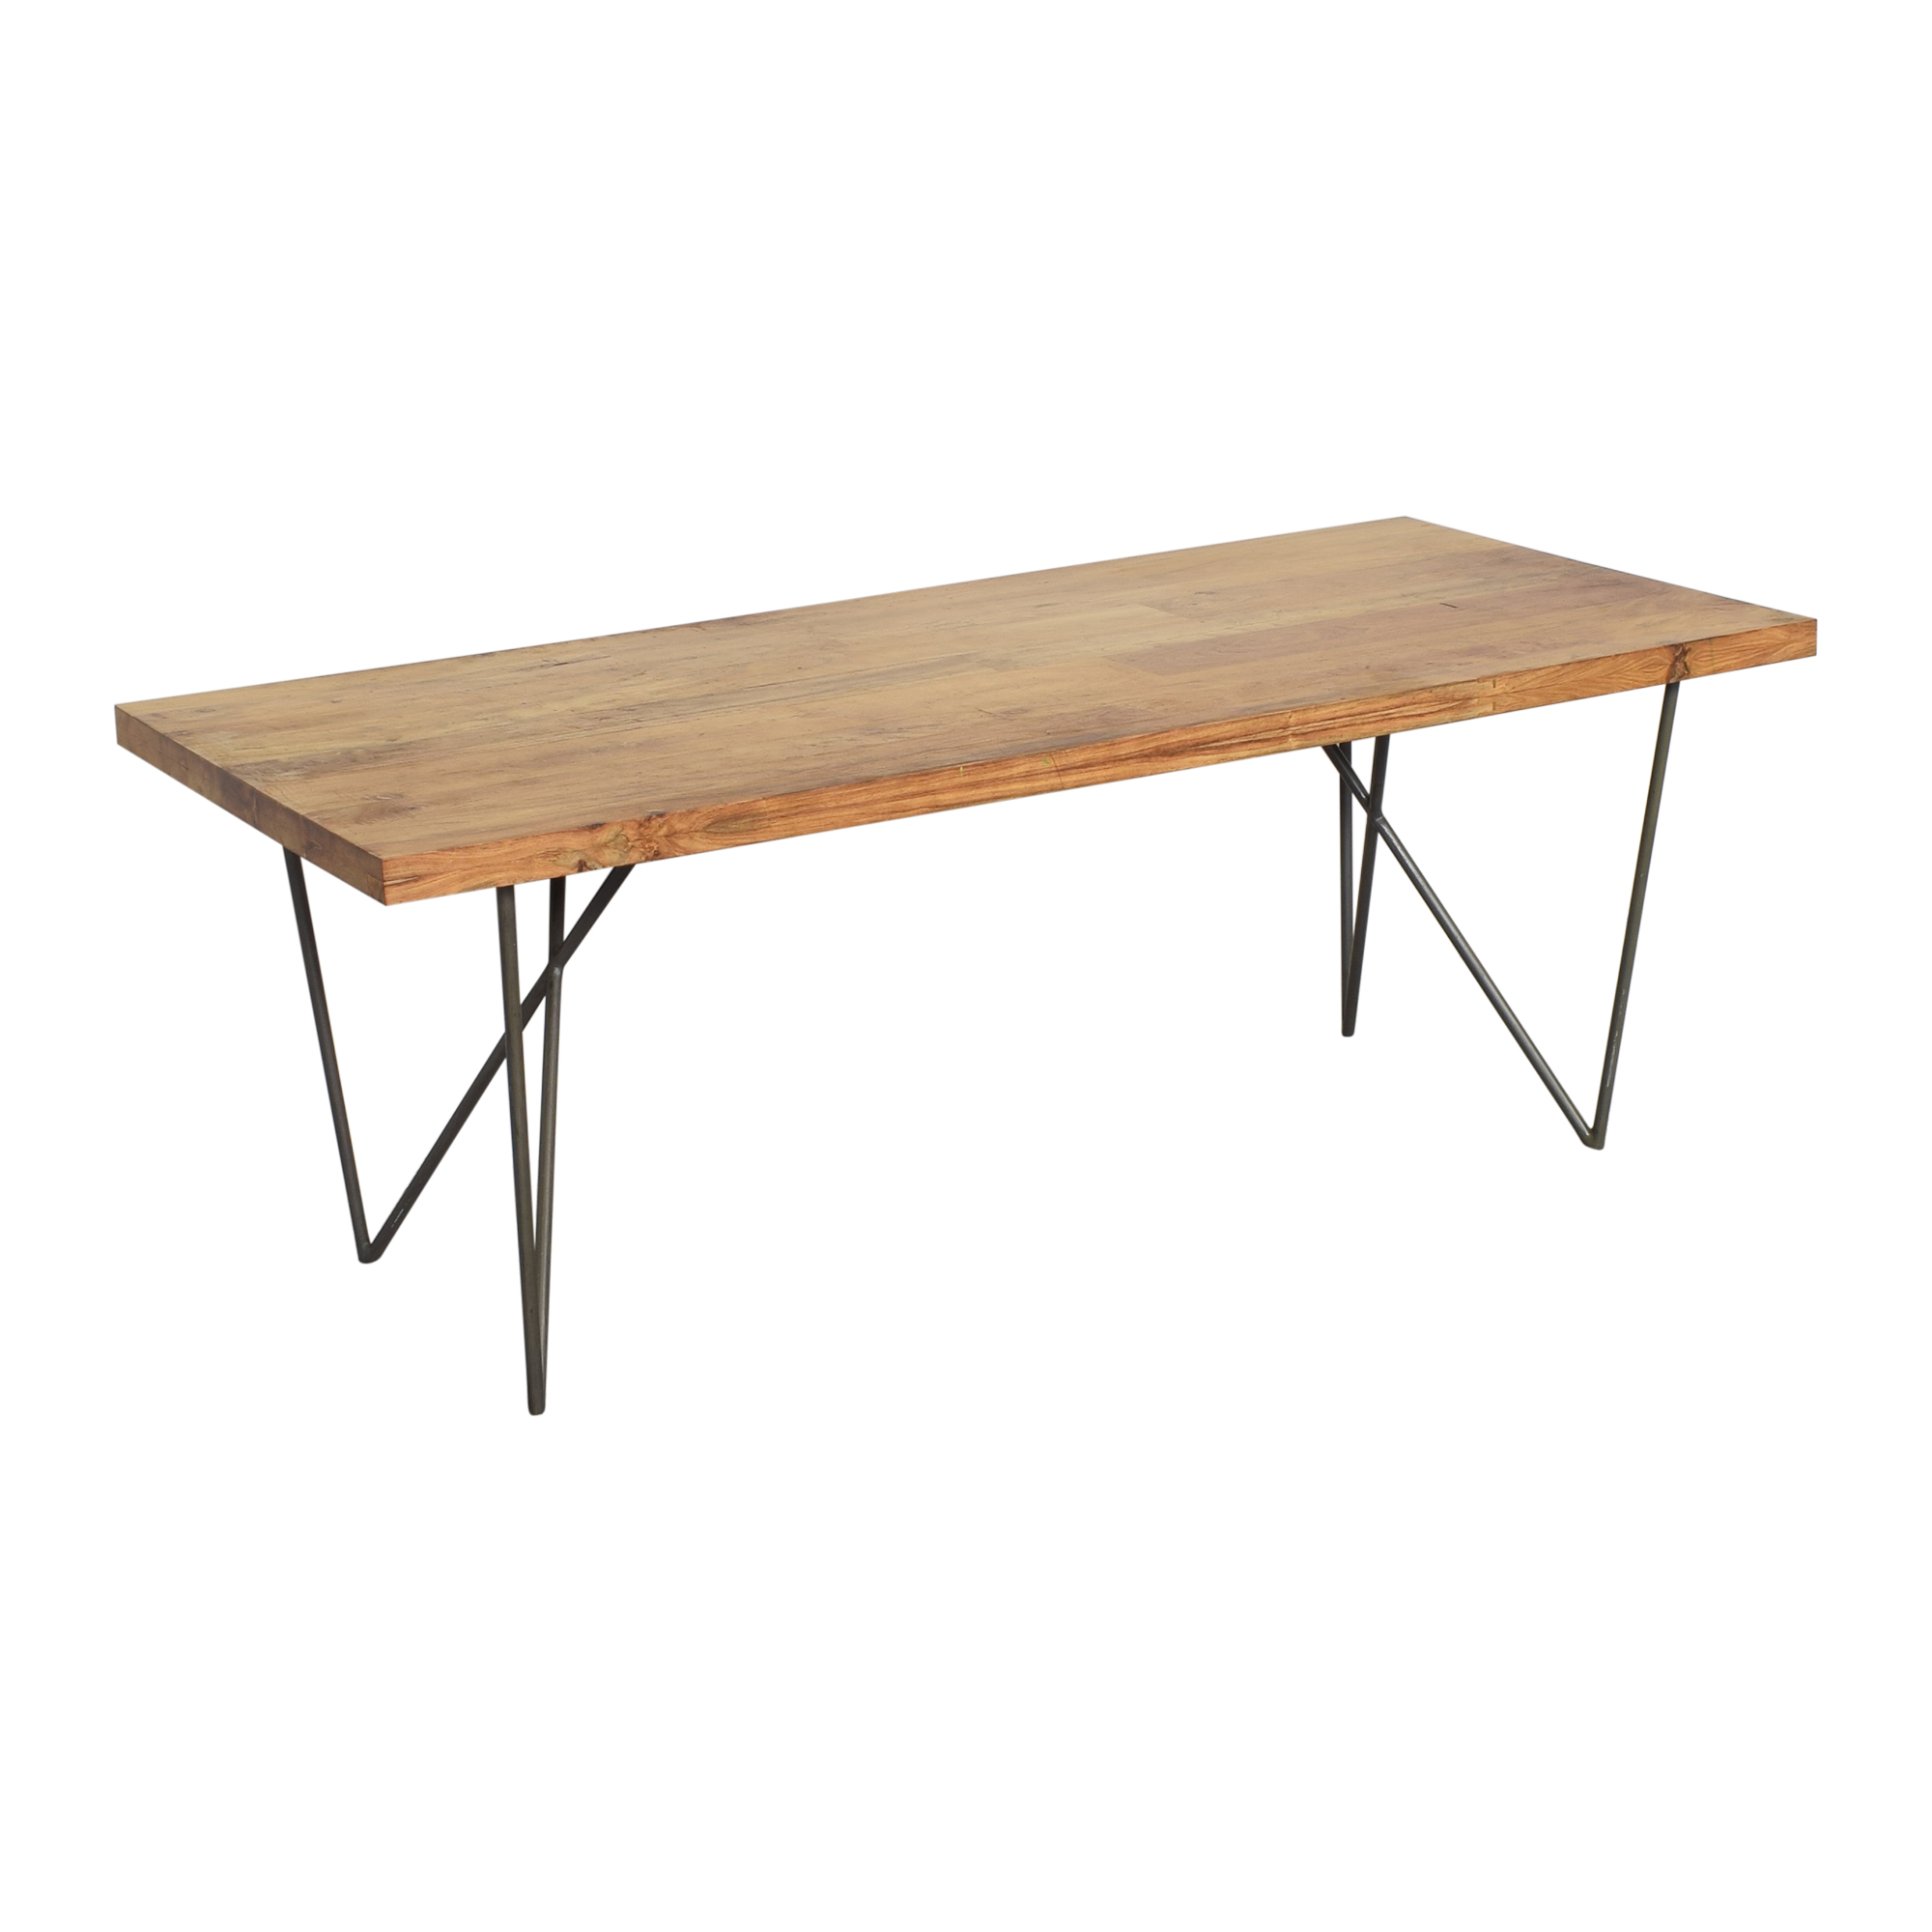 CB2 CB2 Dylan Dining Table pa